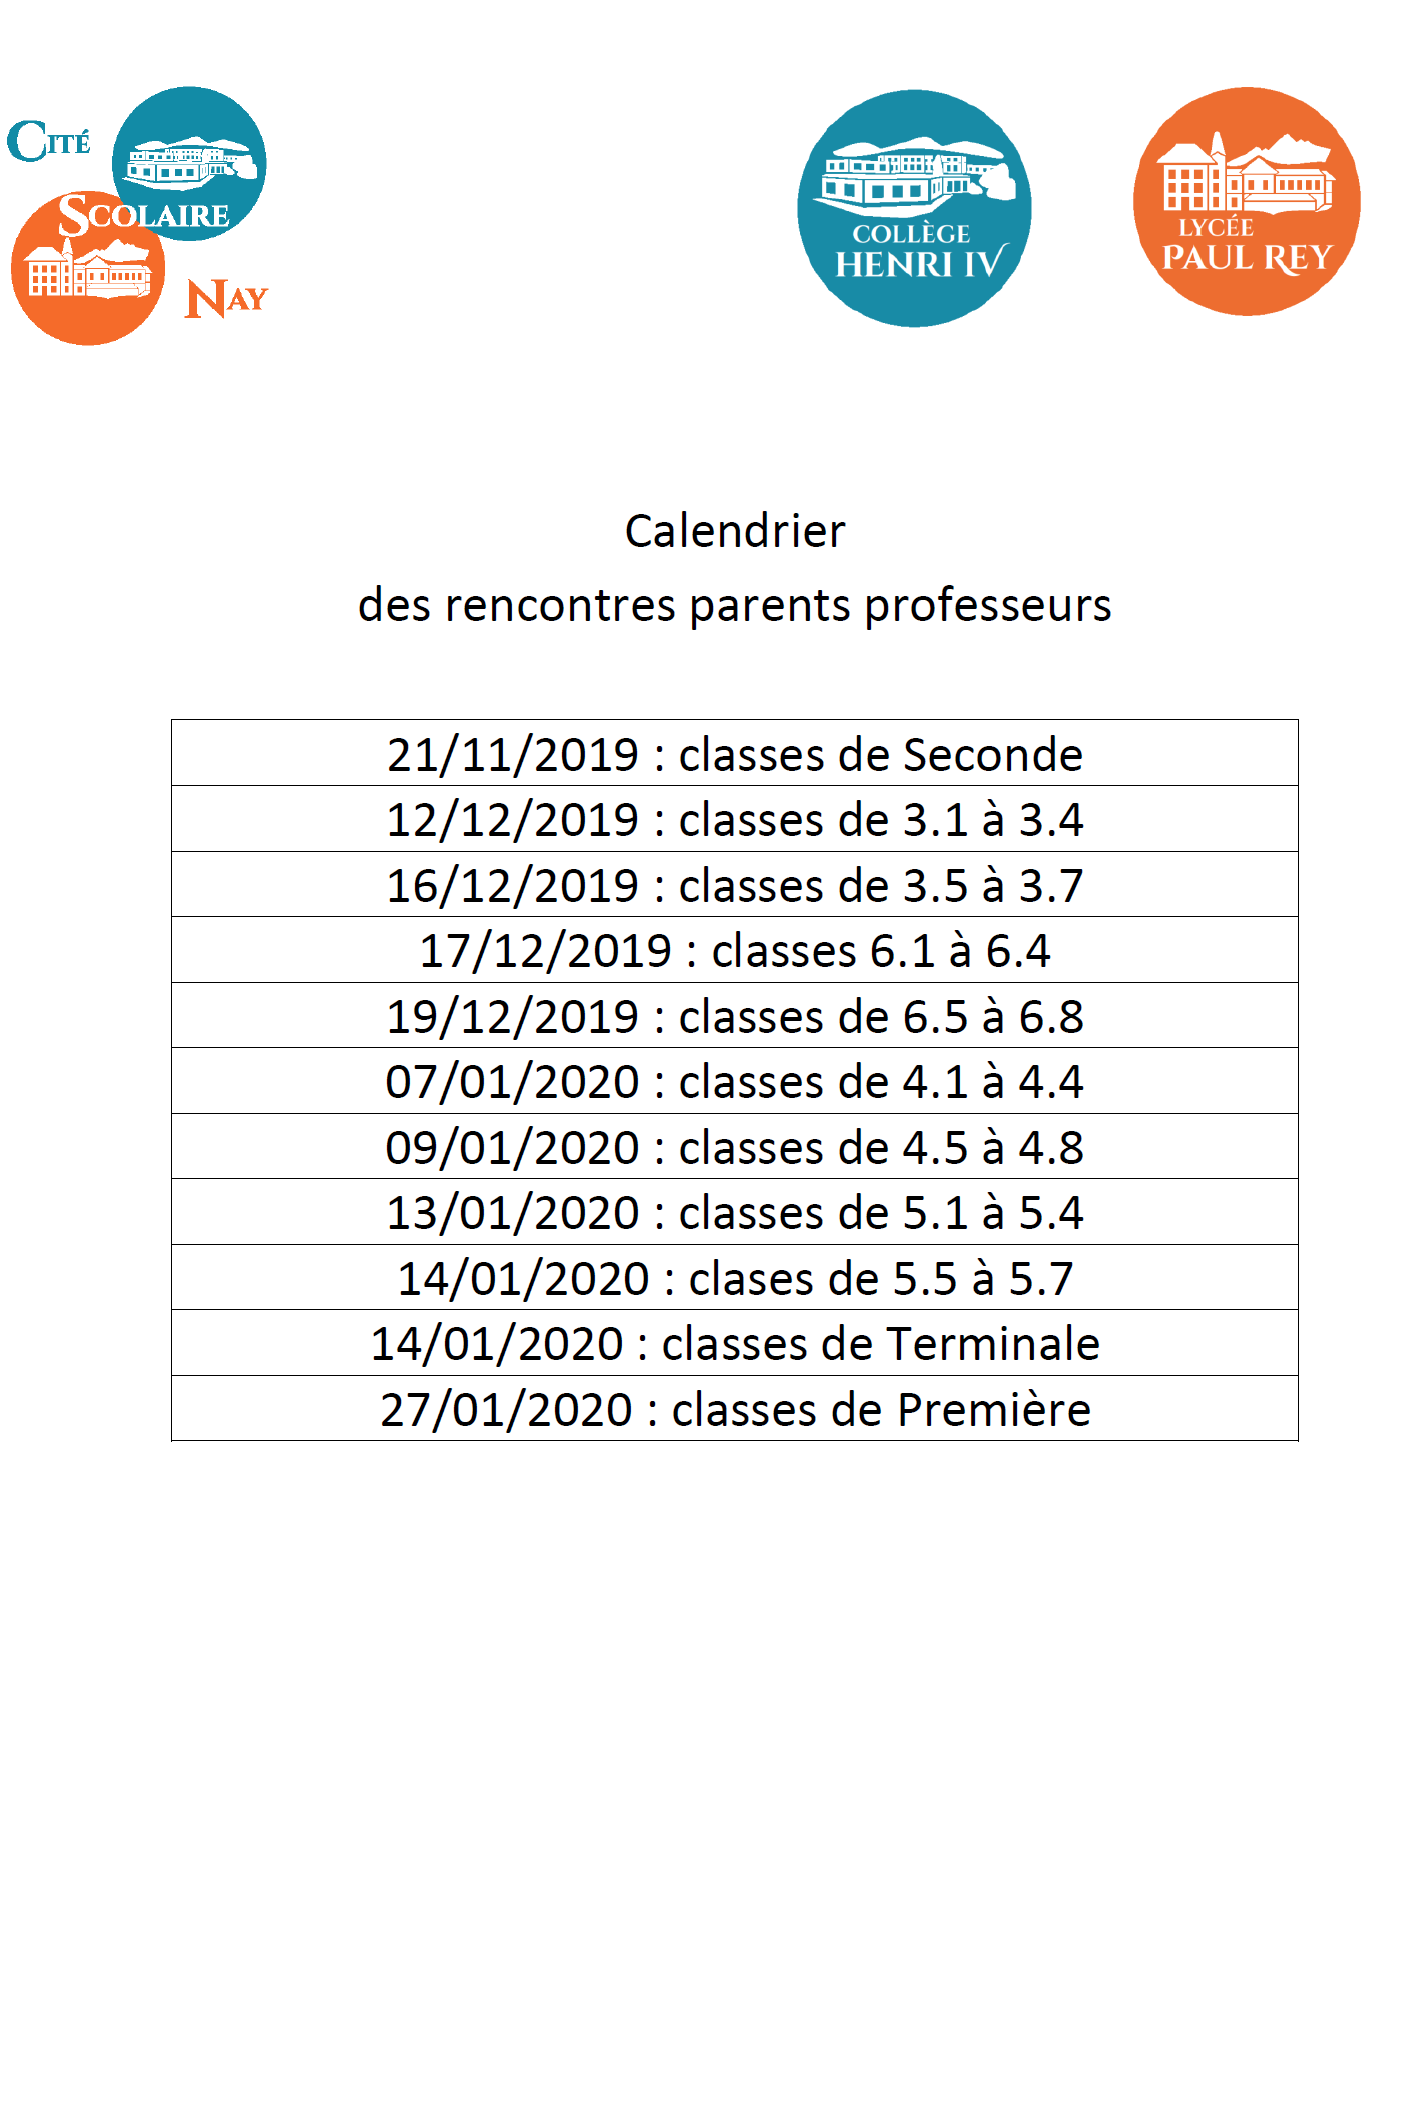 Calendrier Uppa.Cite Scolaire De Nay College Henri Iv Et Lycee Paul Rey 64